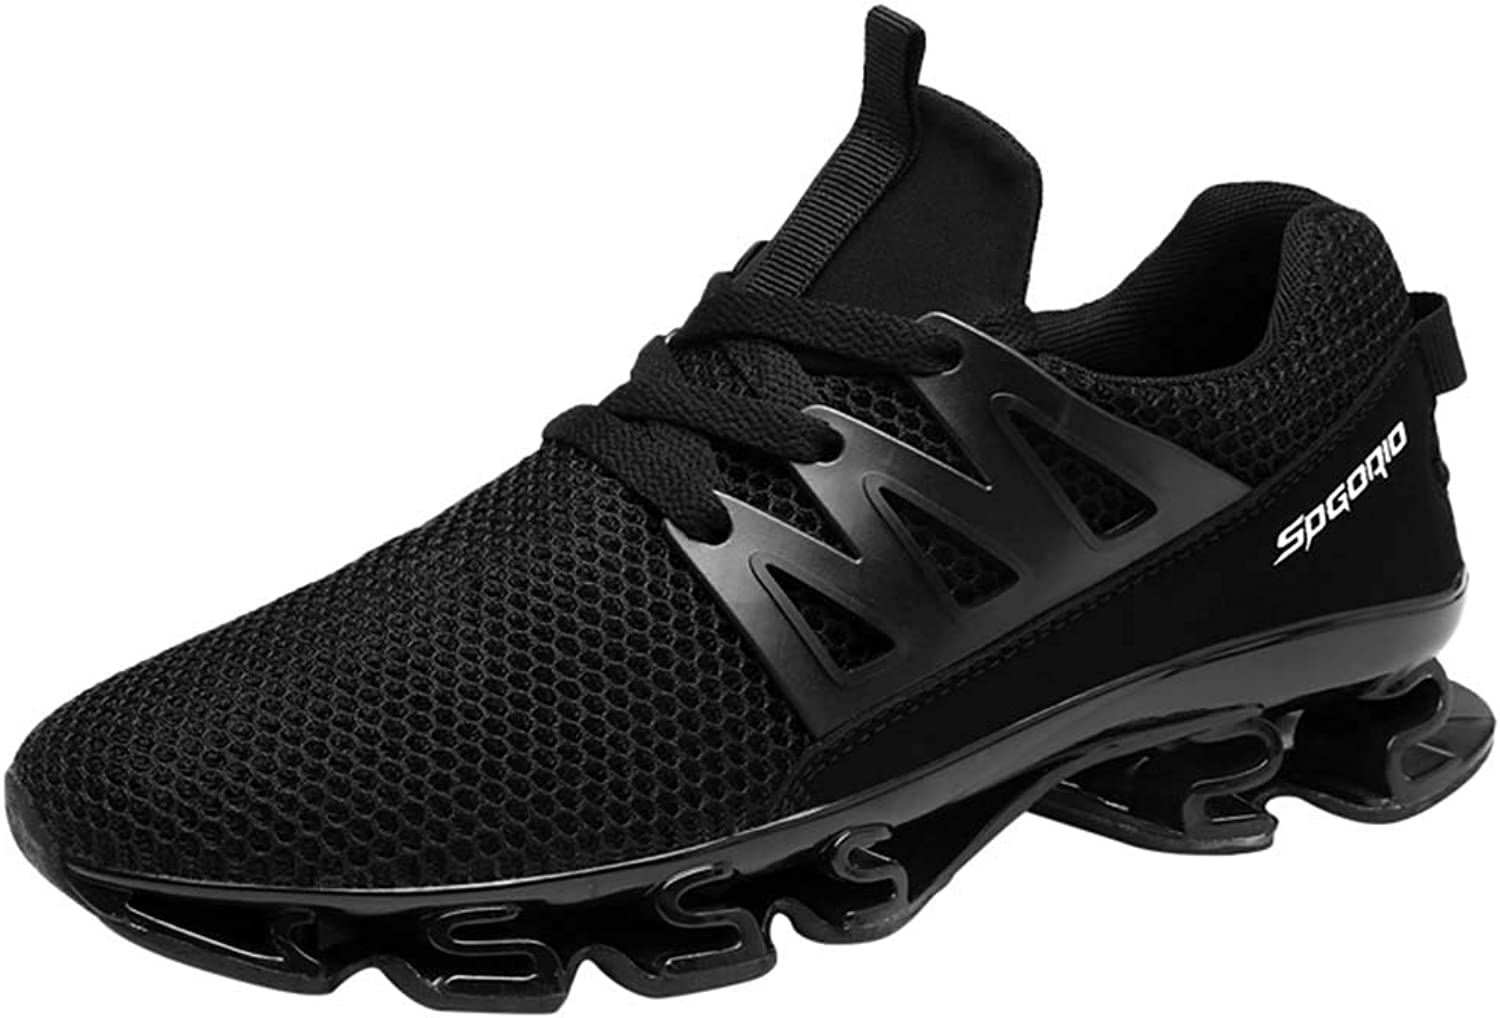 Wander G Mens Casual Walking shoes Blade Outdoor Sport Sneakers Mesh Breathable Fashion shoes for Running Gym